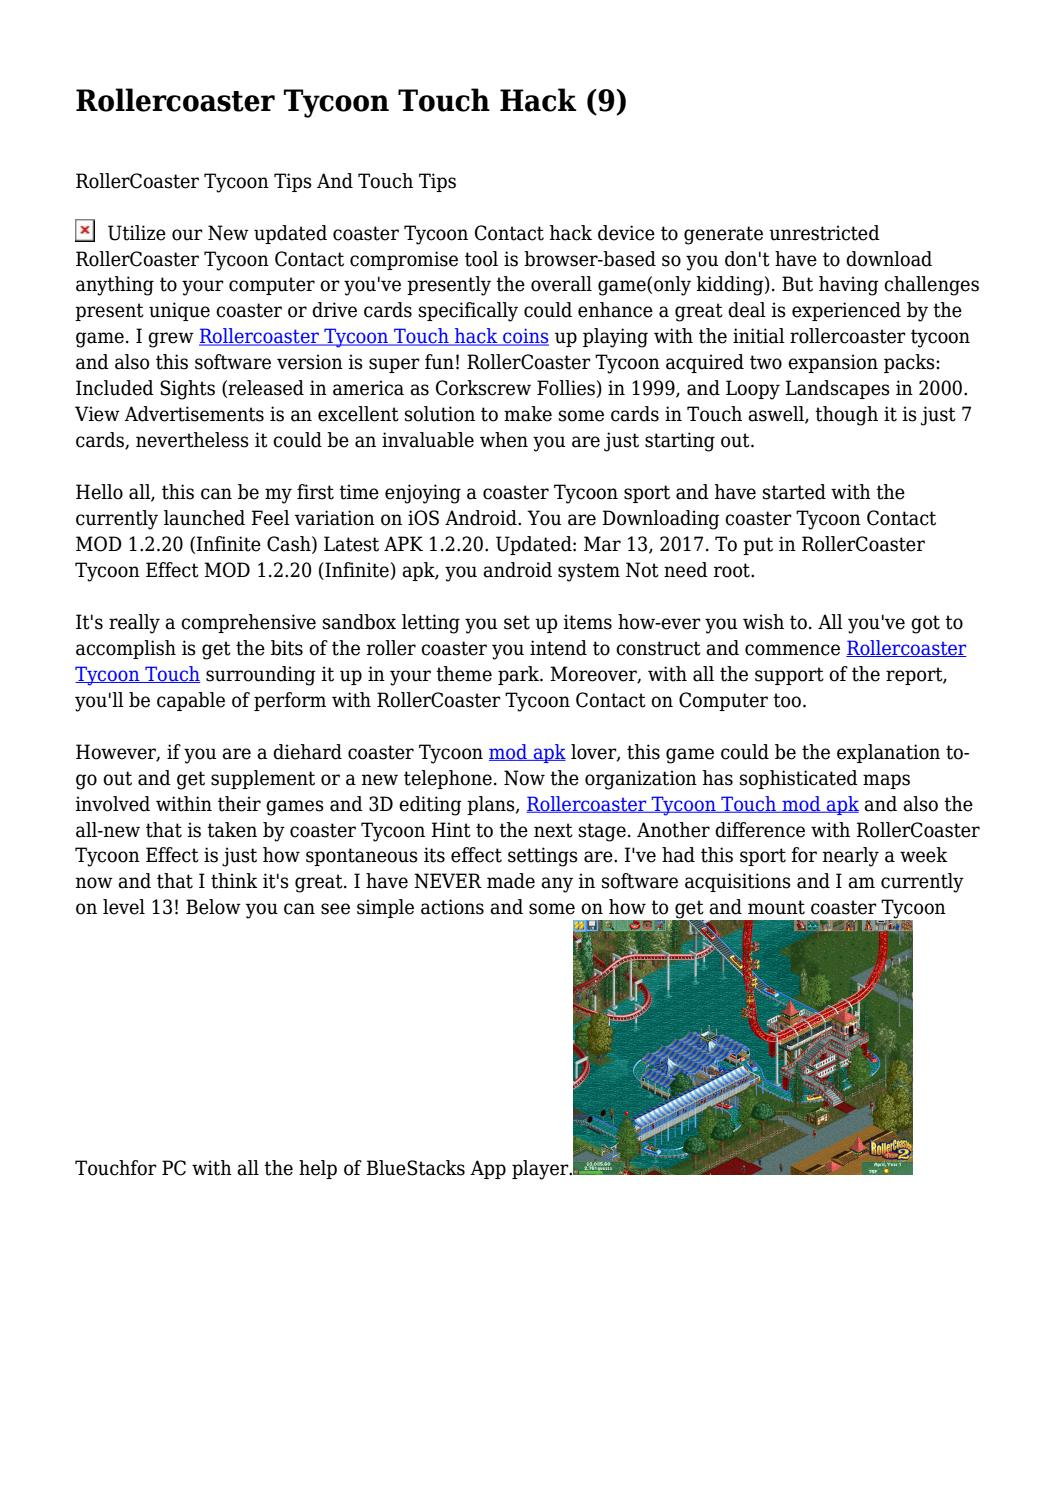 Rollercoaster Tycoon Touch Hack (9)    by derangedtwiligh46